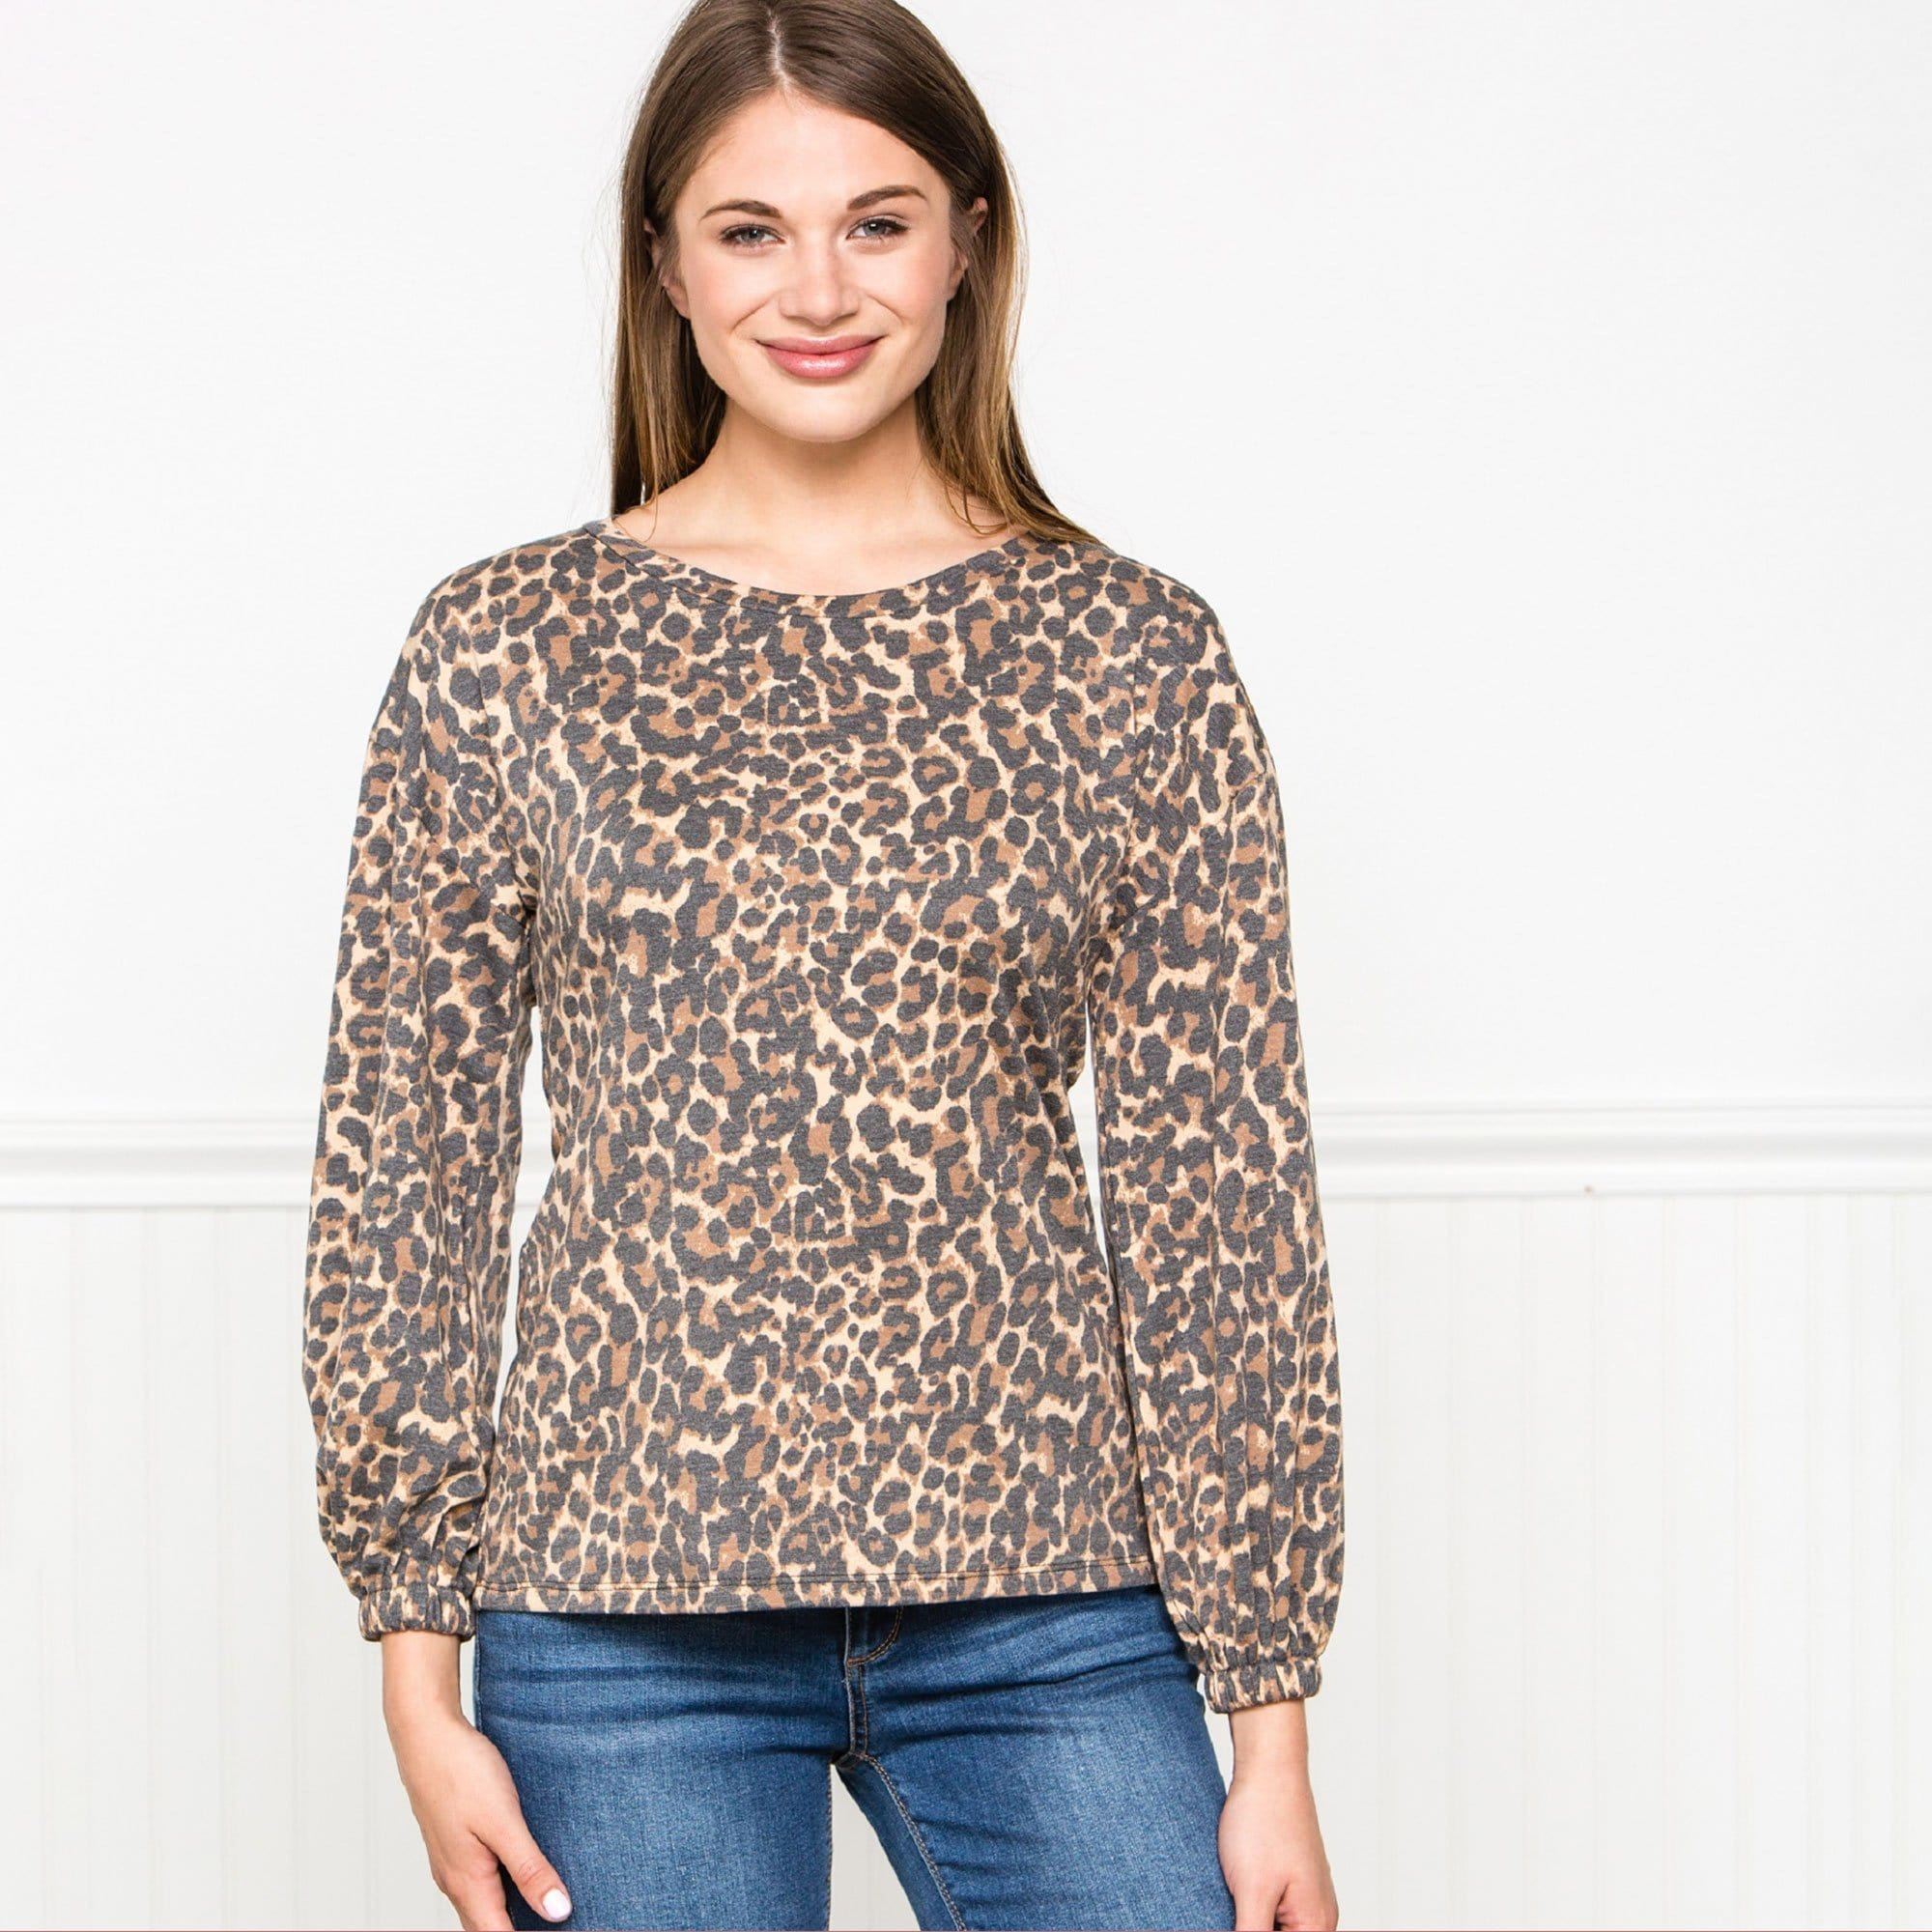 Queen of the Weekend Top